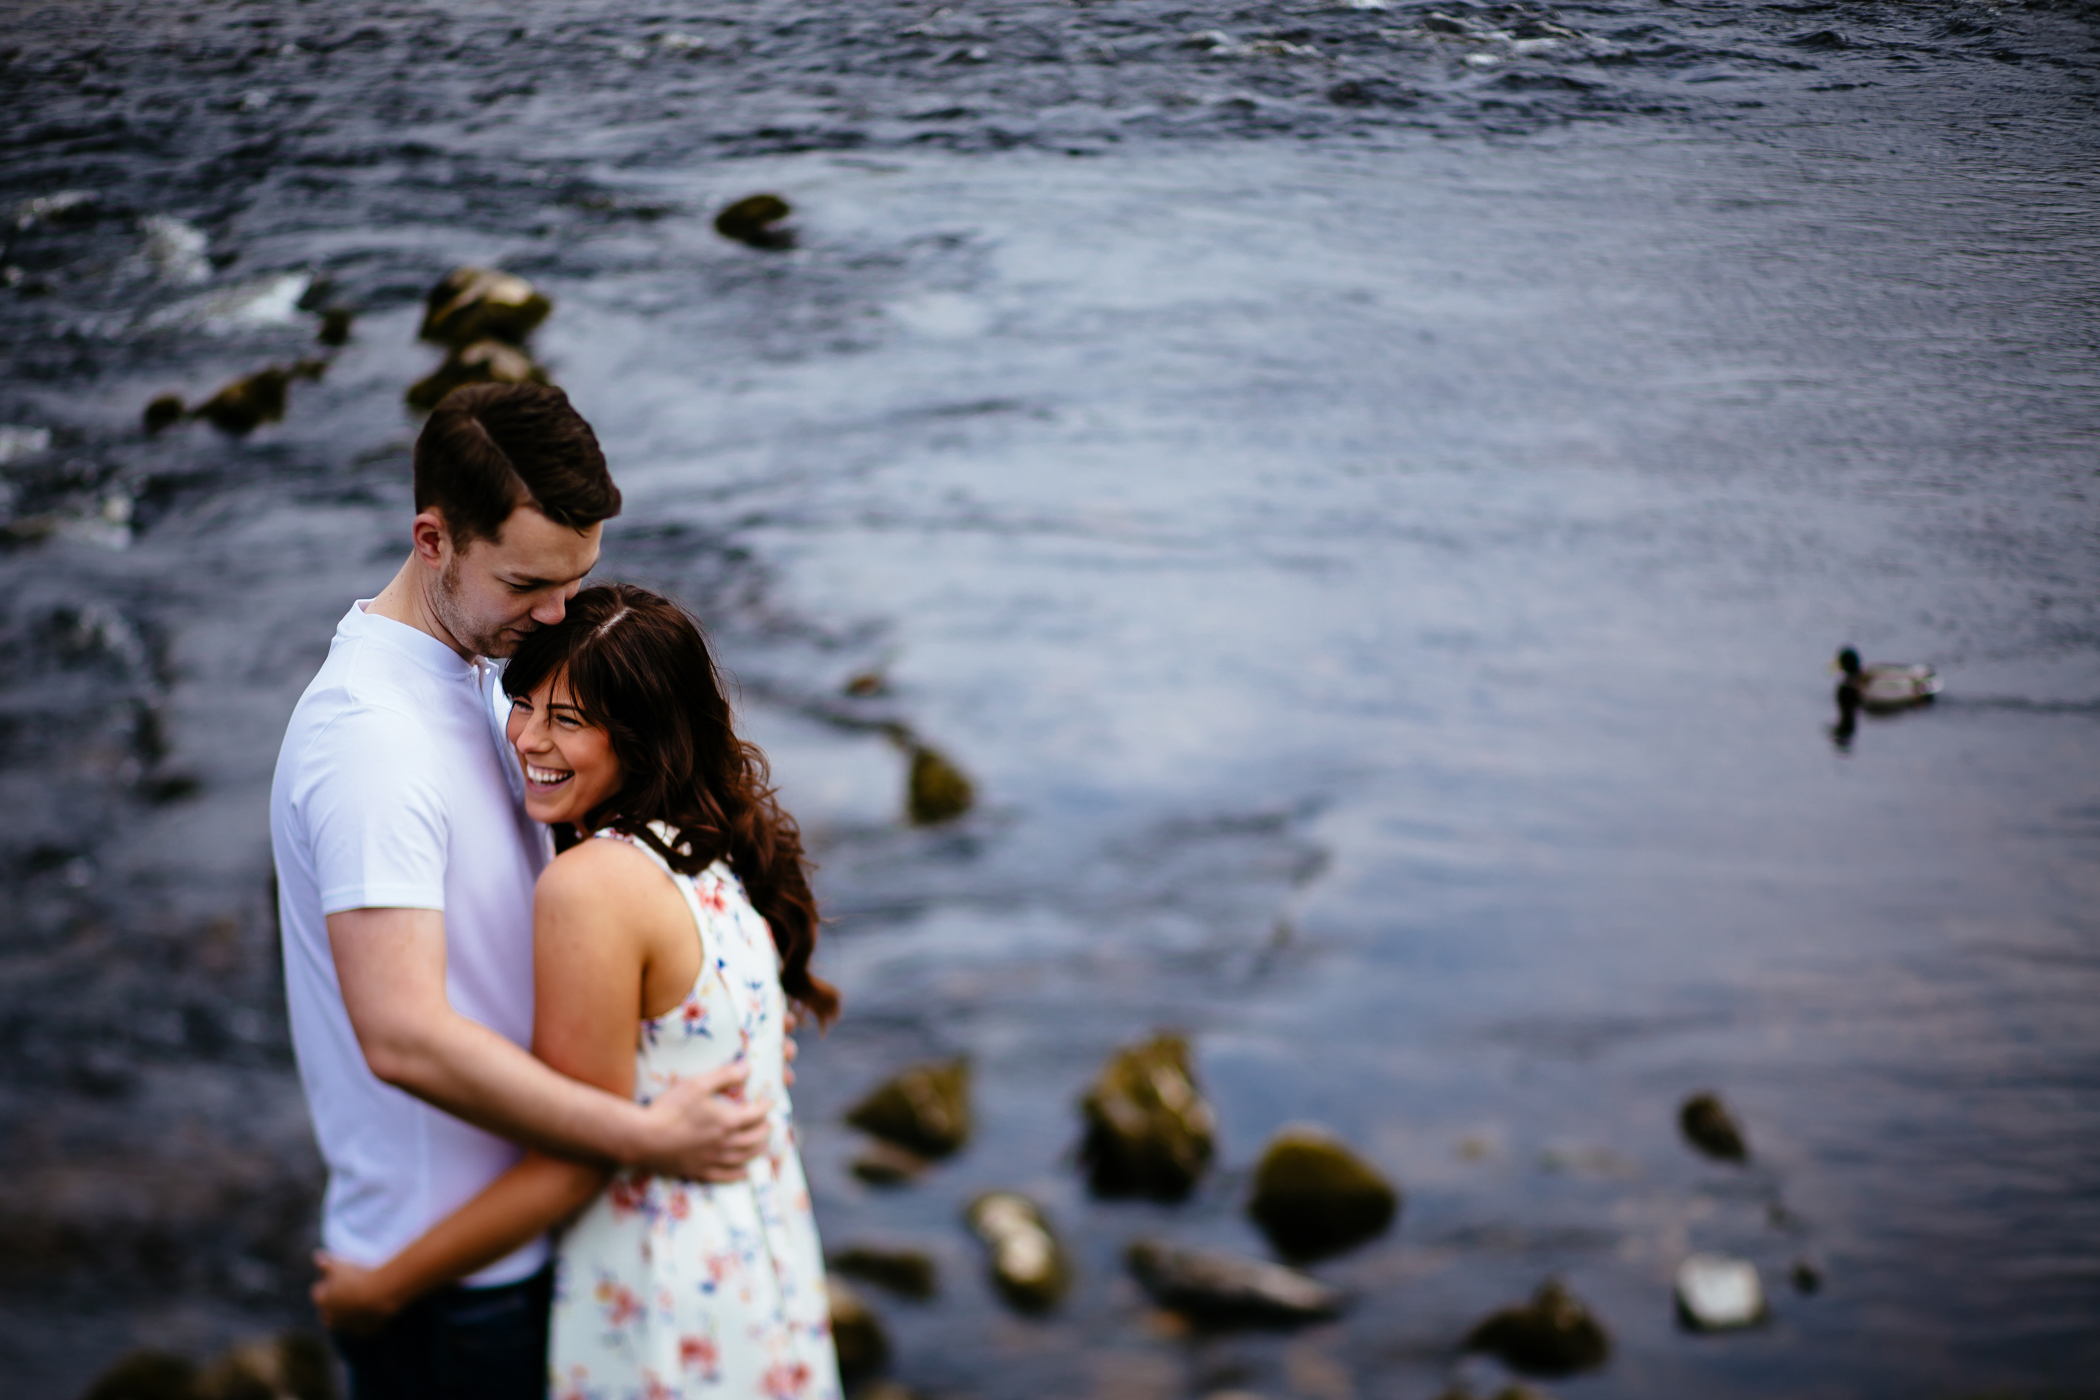 jo & josh - Sansom Photography bolton abbey-5